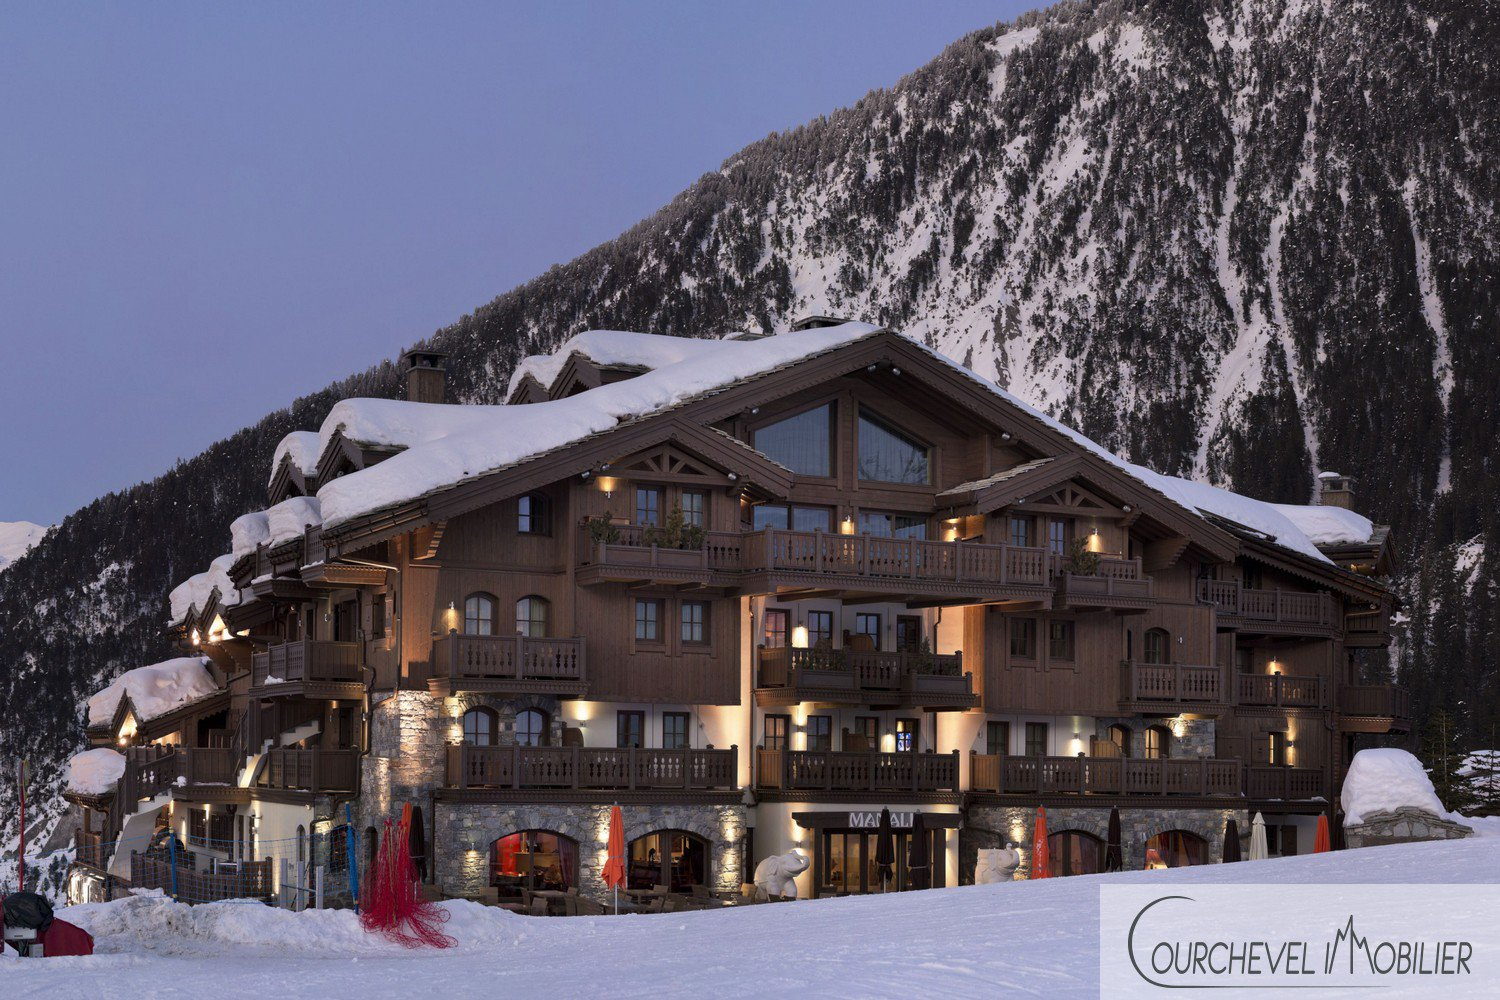 98 sqm apartment in Courchevel 1650